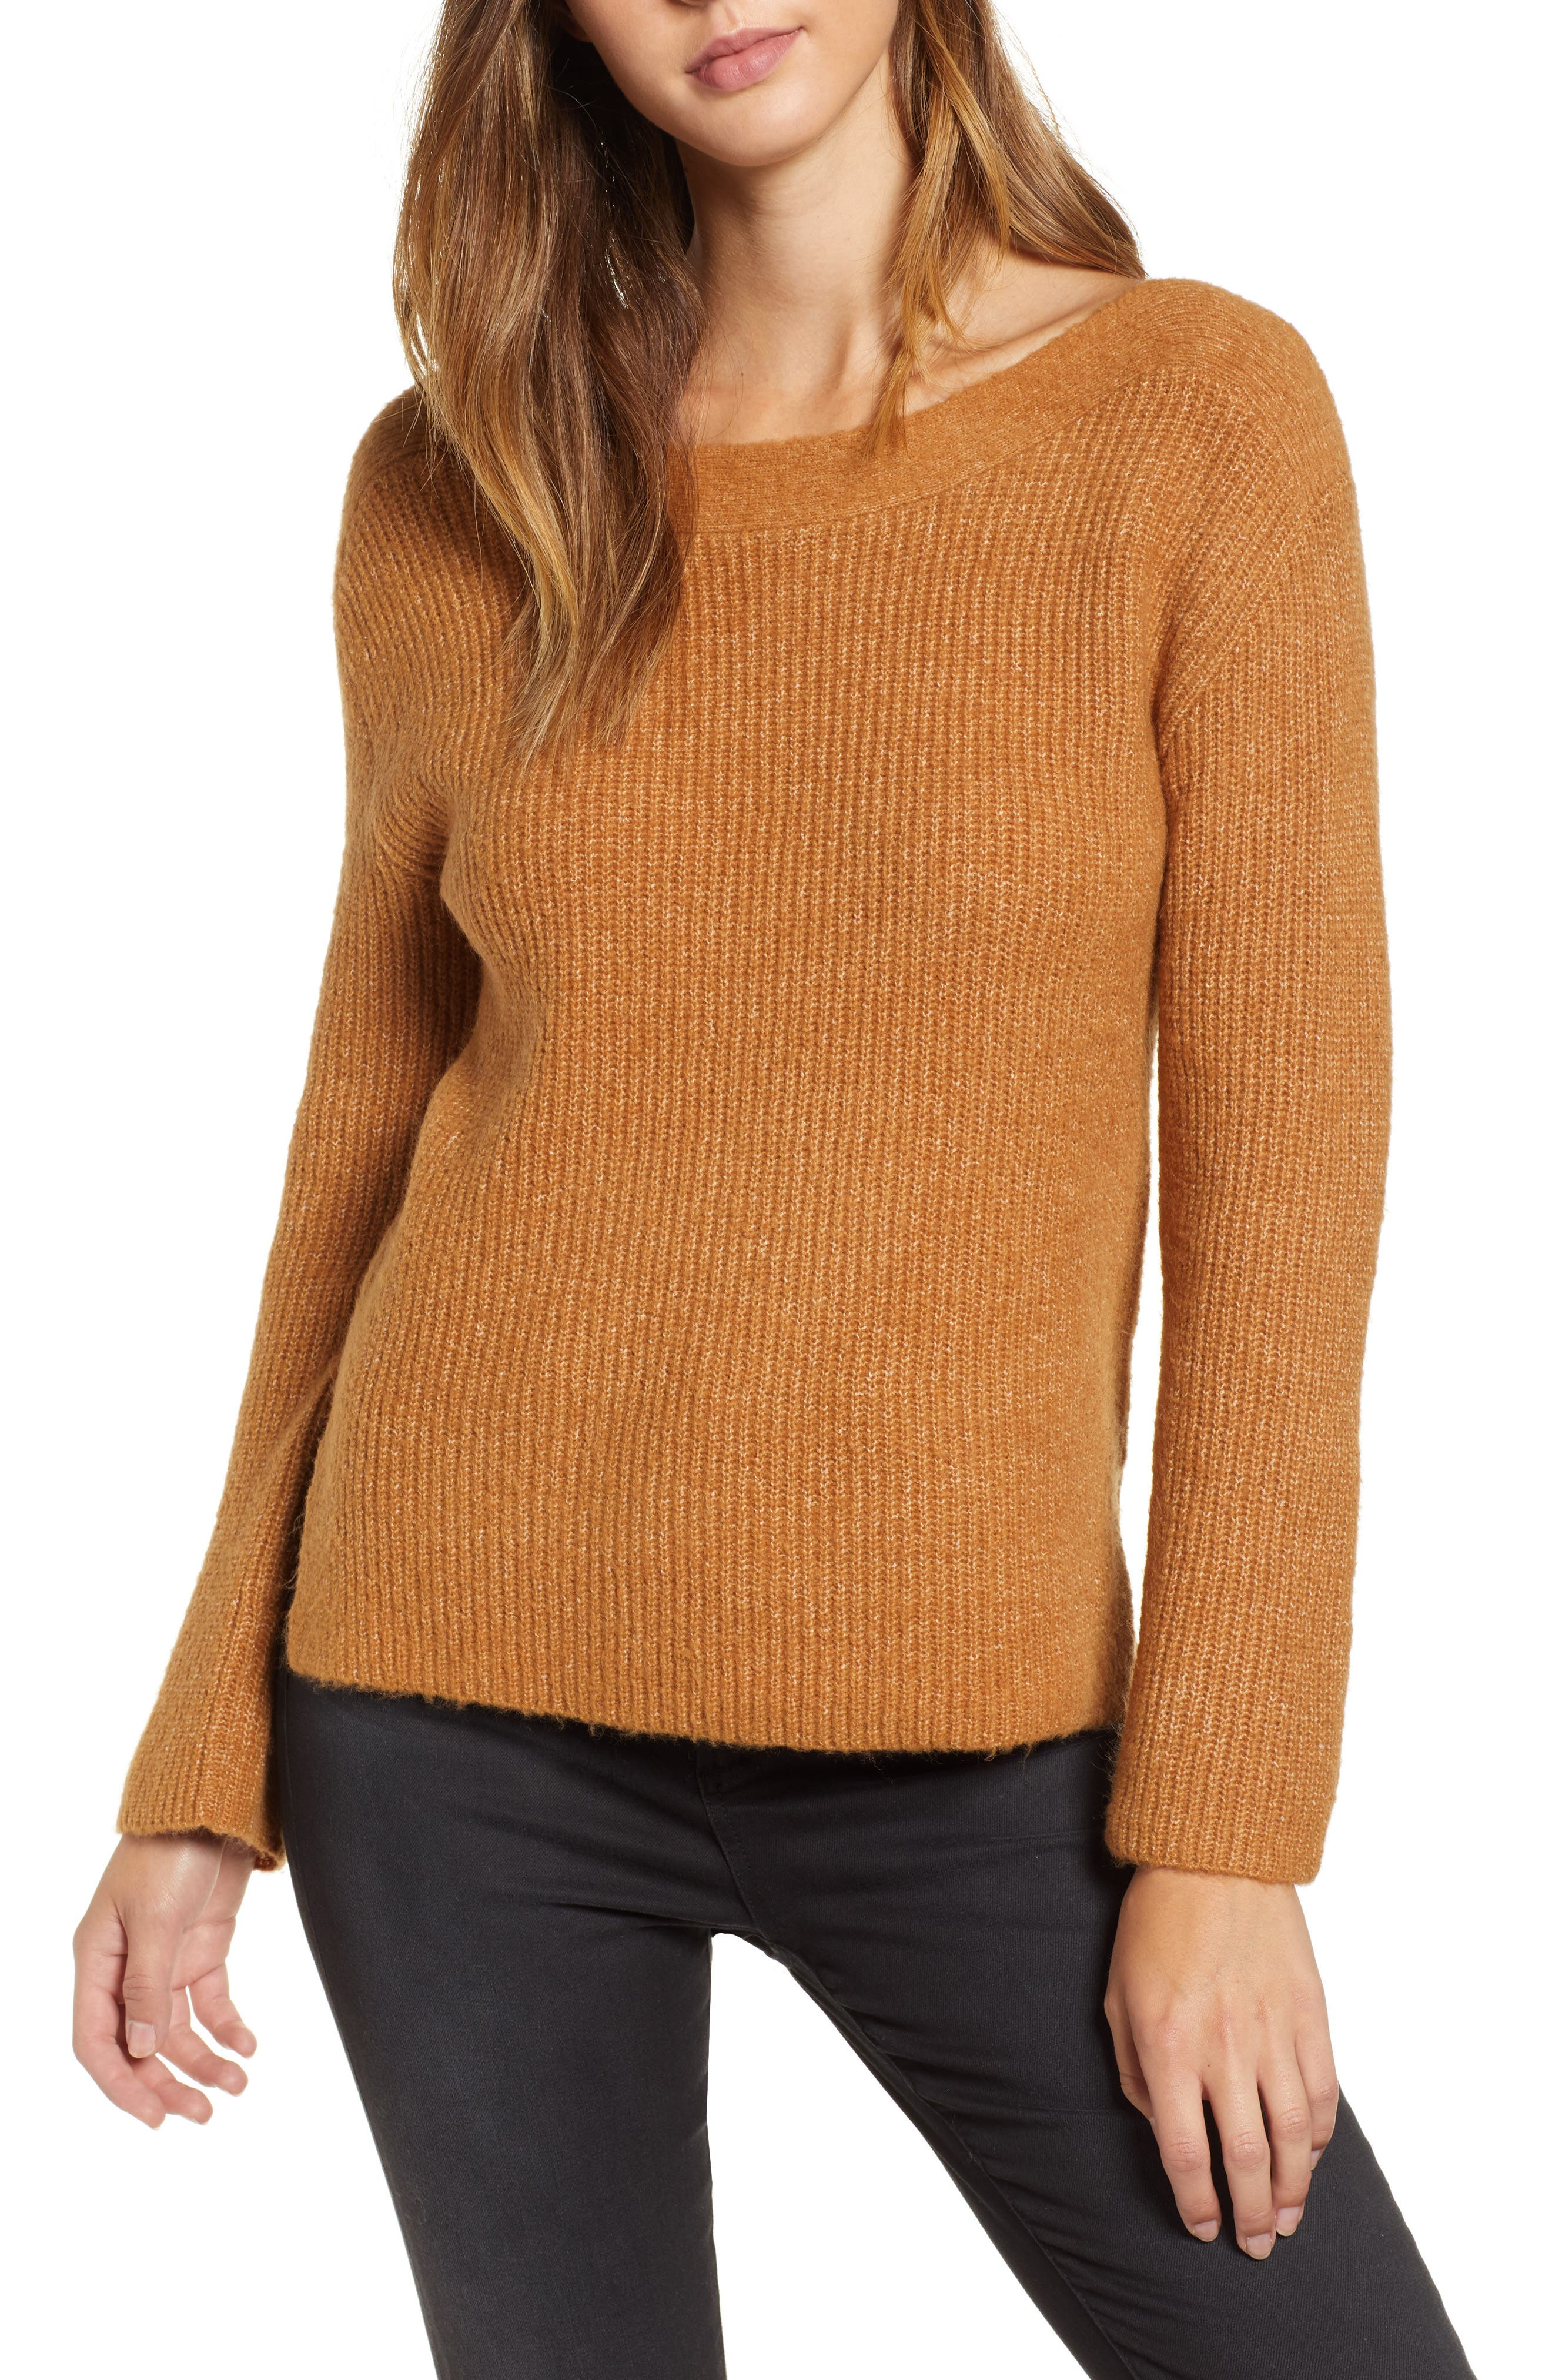 Cozy Femme Pullover Sweater,                         Main,                         color, TAN DALE